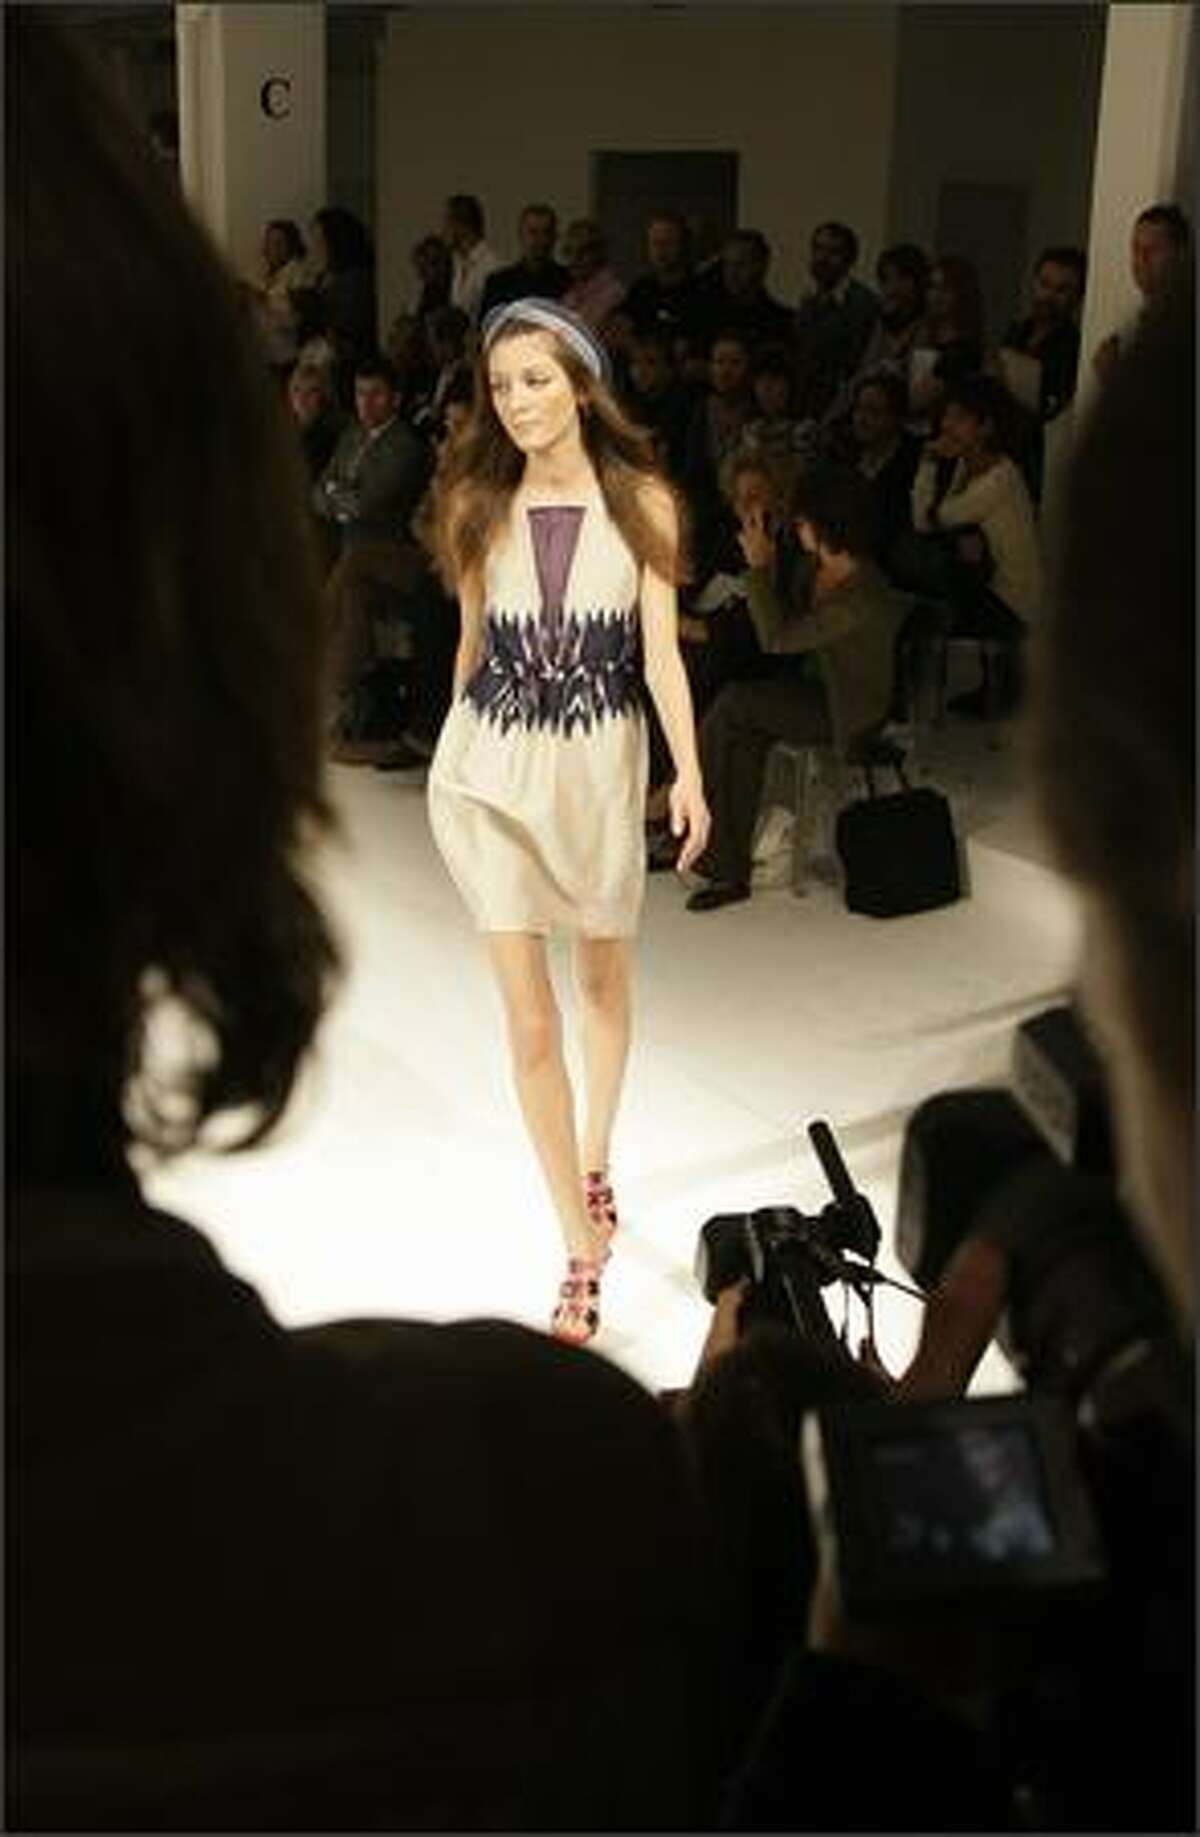 A model presents a creation by Turkish designer Rifat Ozbek for Pollini during the spring/summer 2008 collections of the Milan ready-to-wear fashion shows.